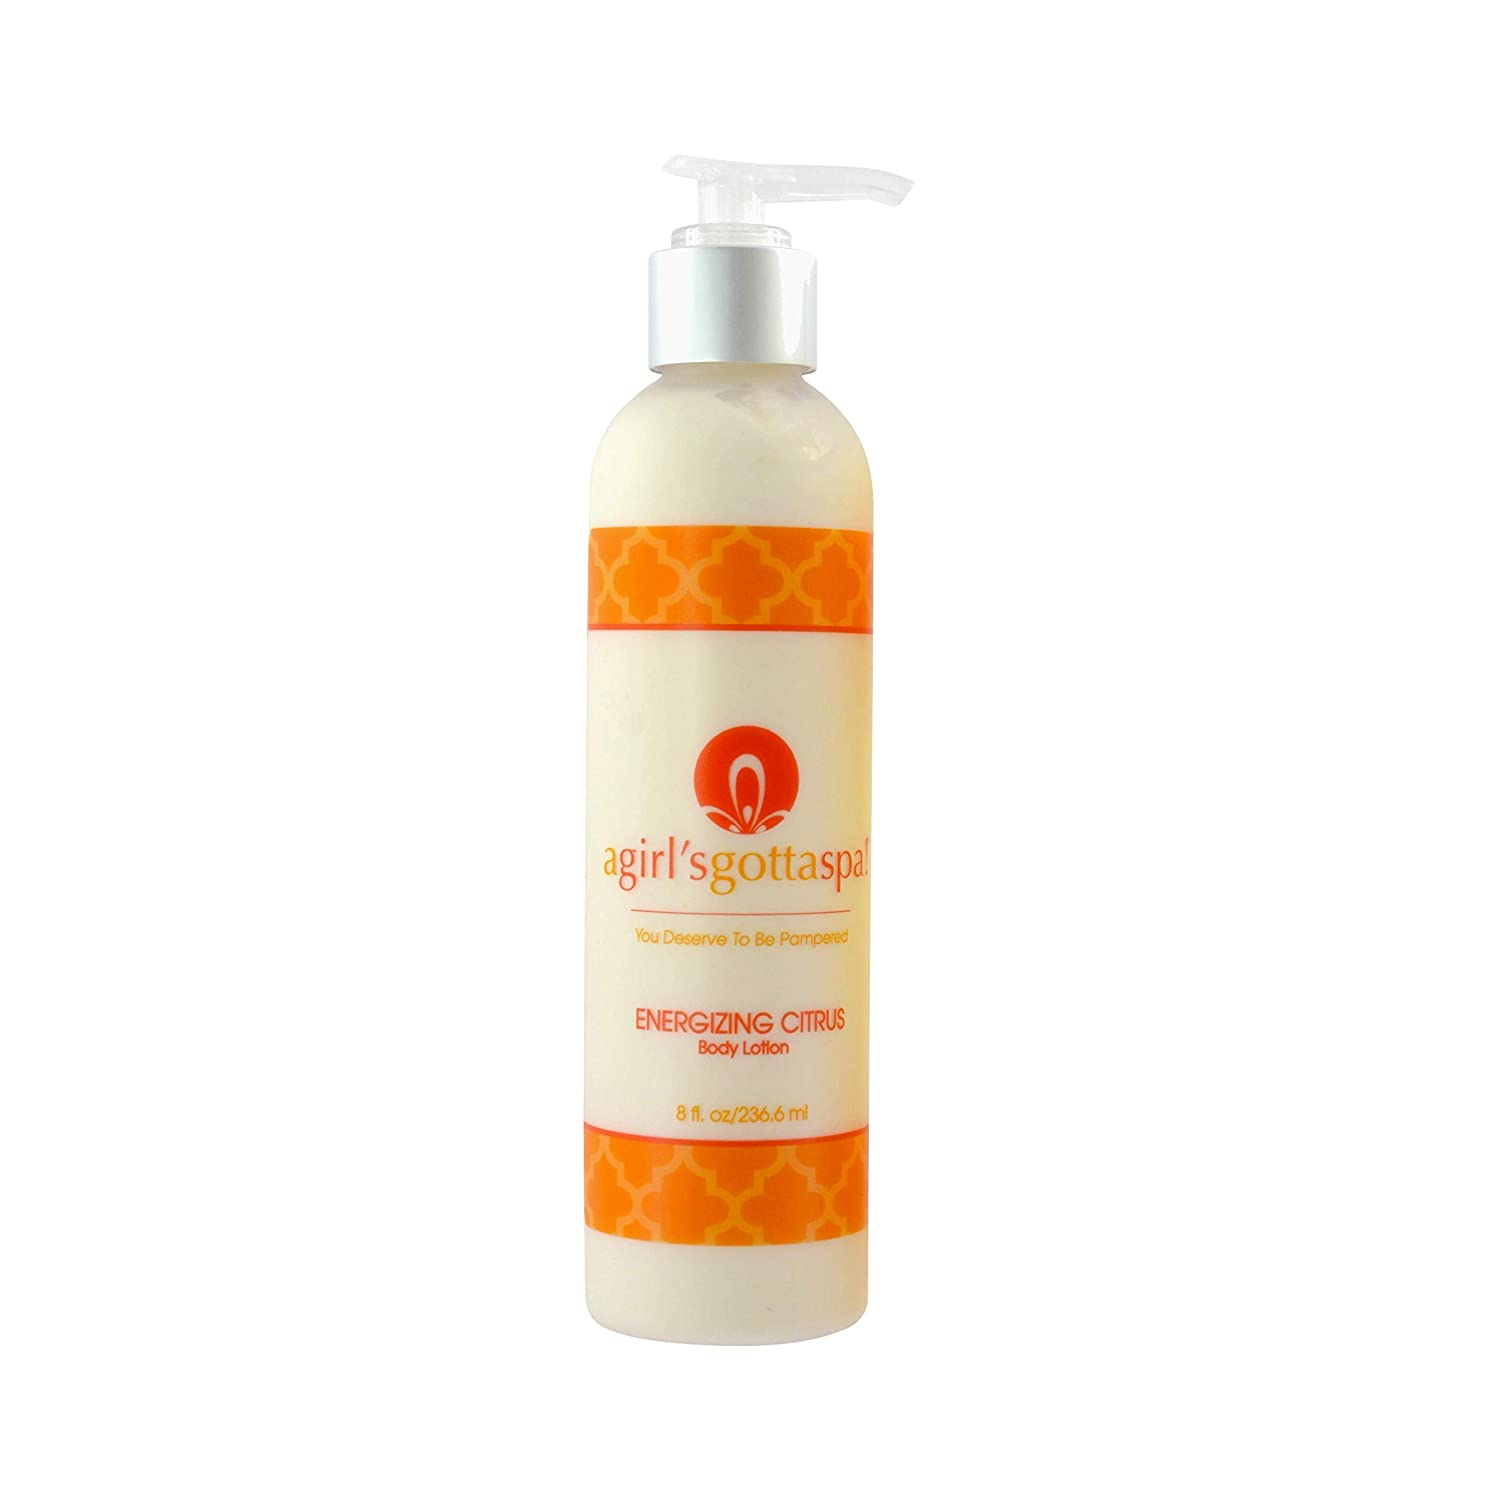 The A Girl's Gotta Spa! Energizing Citrus Body Lotion travel product recommended by Shannon Smyth on Pretty Progressive.